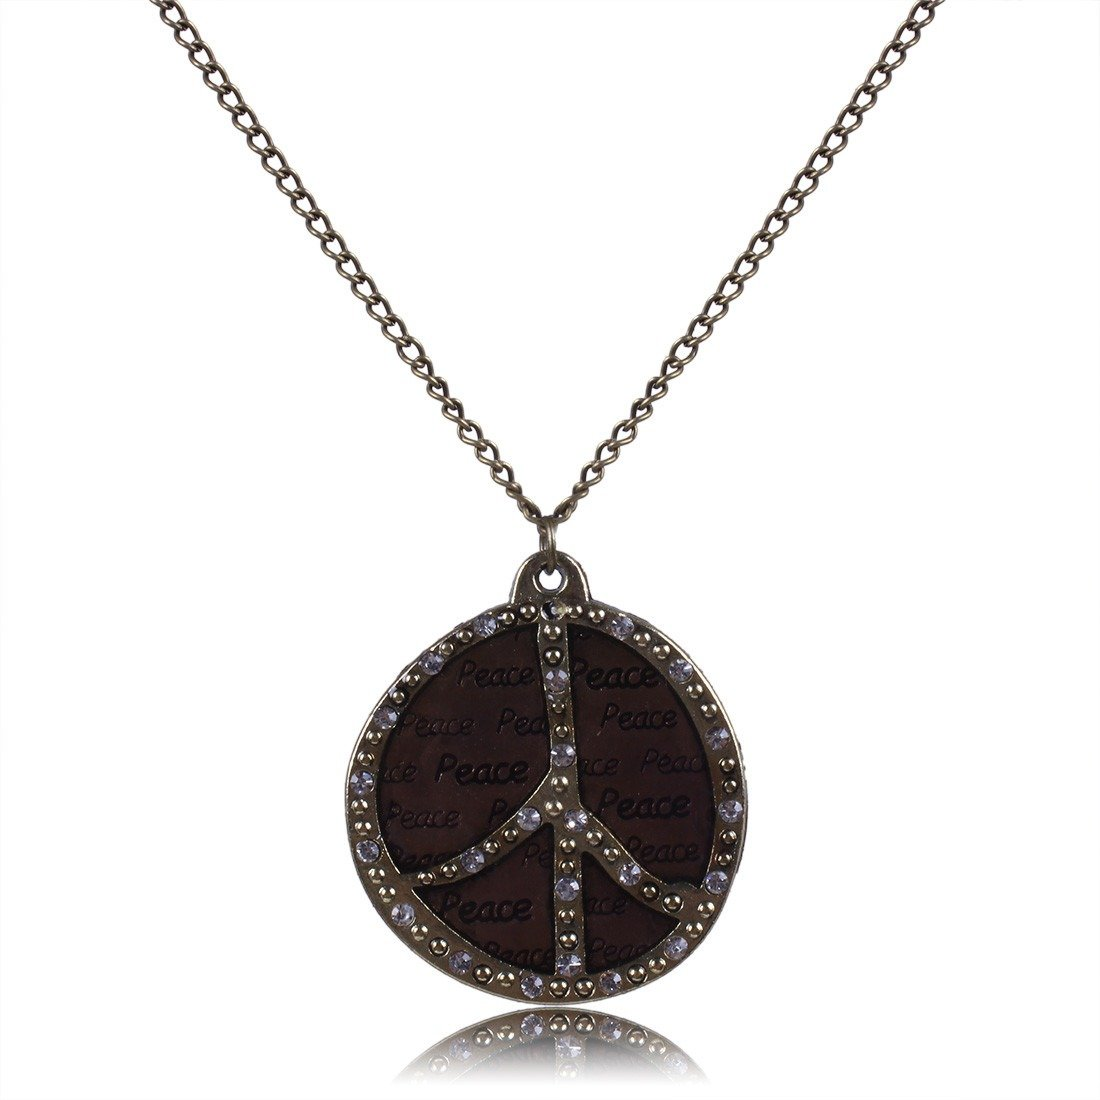 Qiyun Vintage Retro Bling Rhinestone Peace Sign Lover Pendant Chain Necklace Mille sime Signr De Paix Collier W005N1358